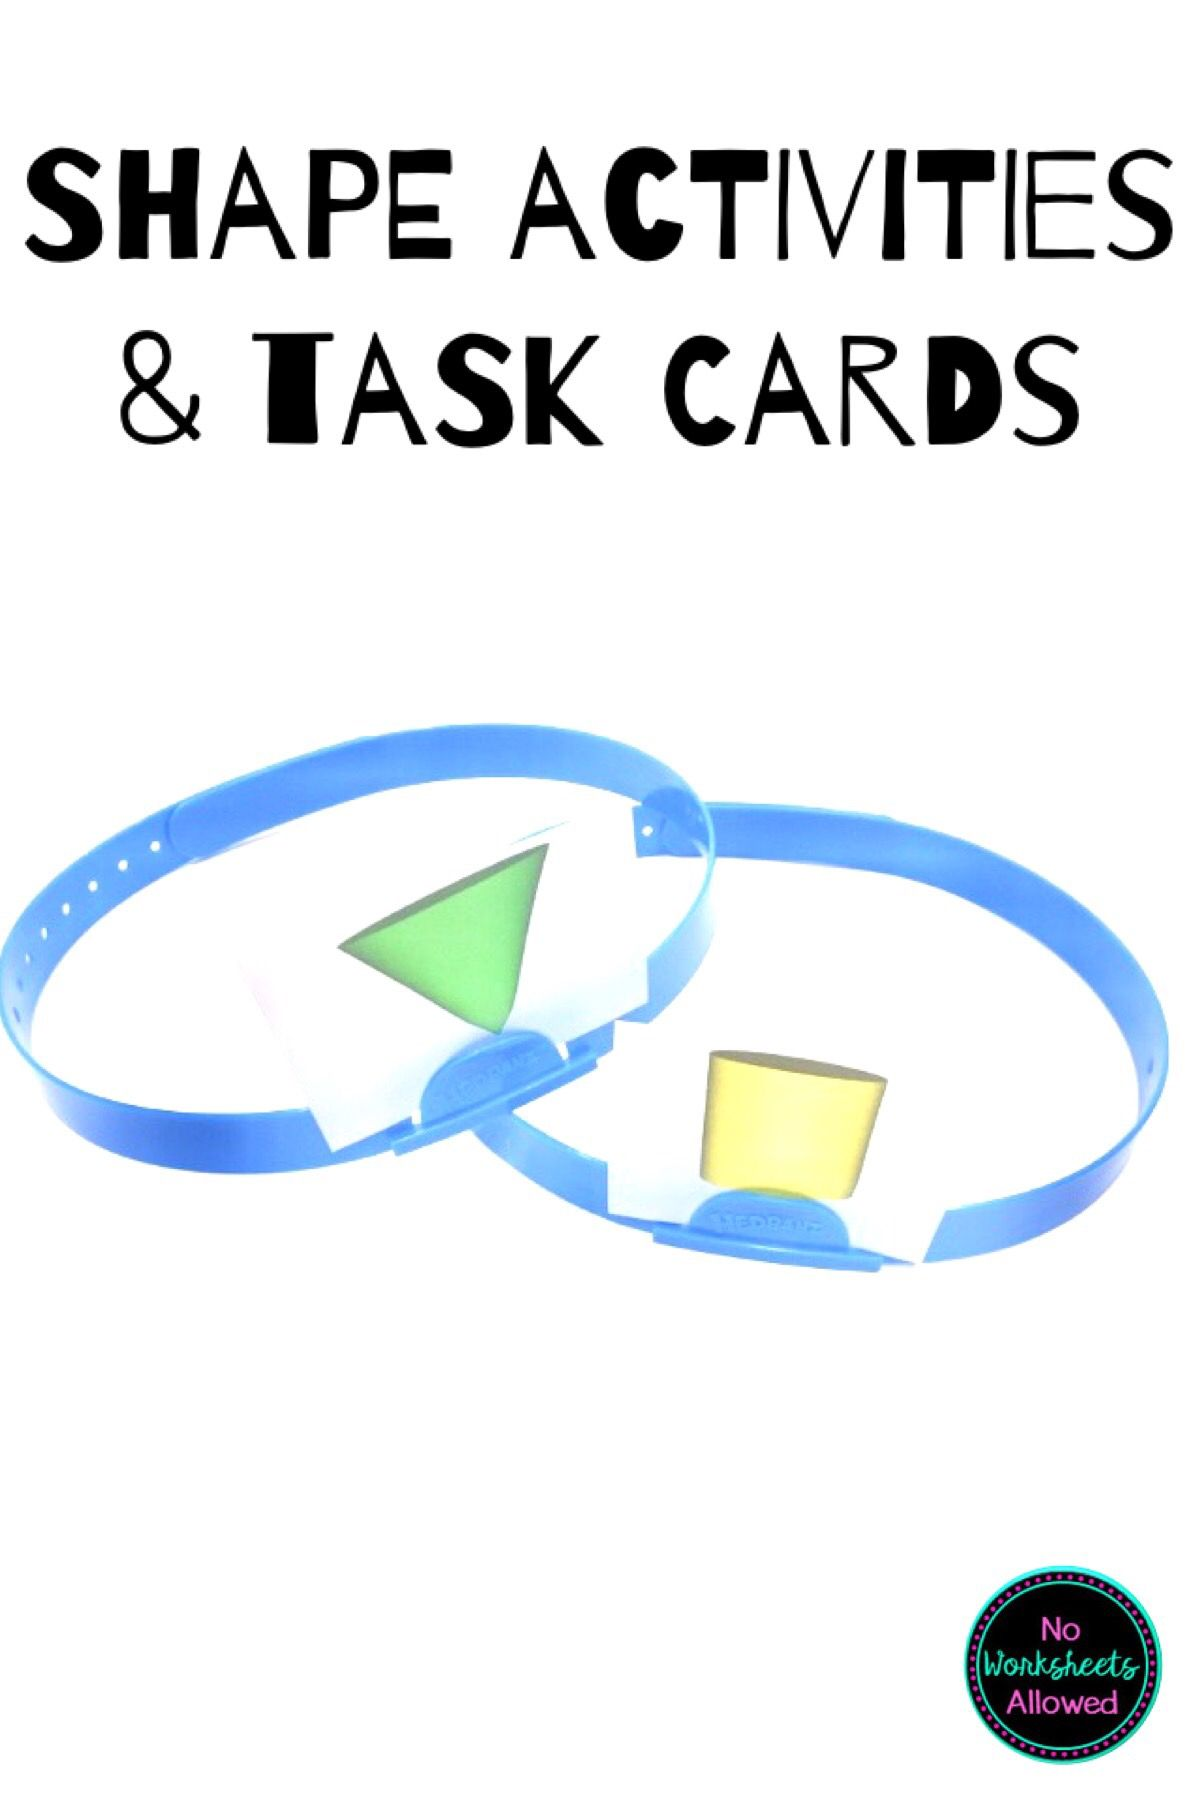 2d And 3d Shape Activities And Task Cards In With